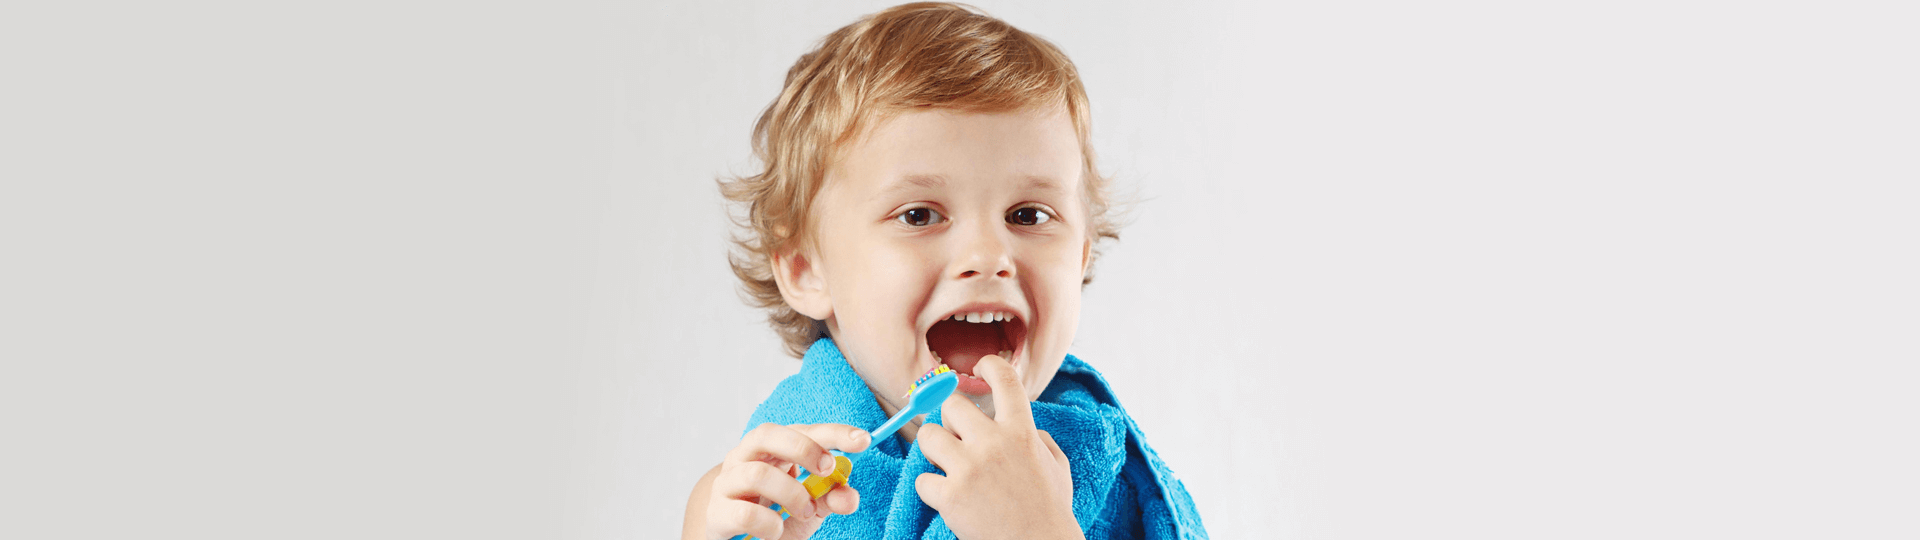 5 Tips to Help Children Avoid Cavities